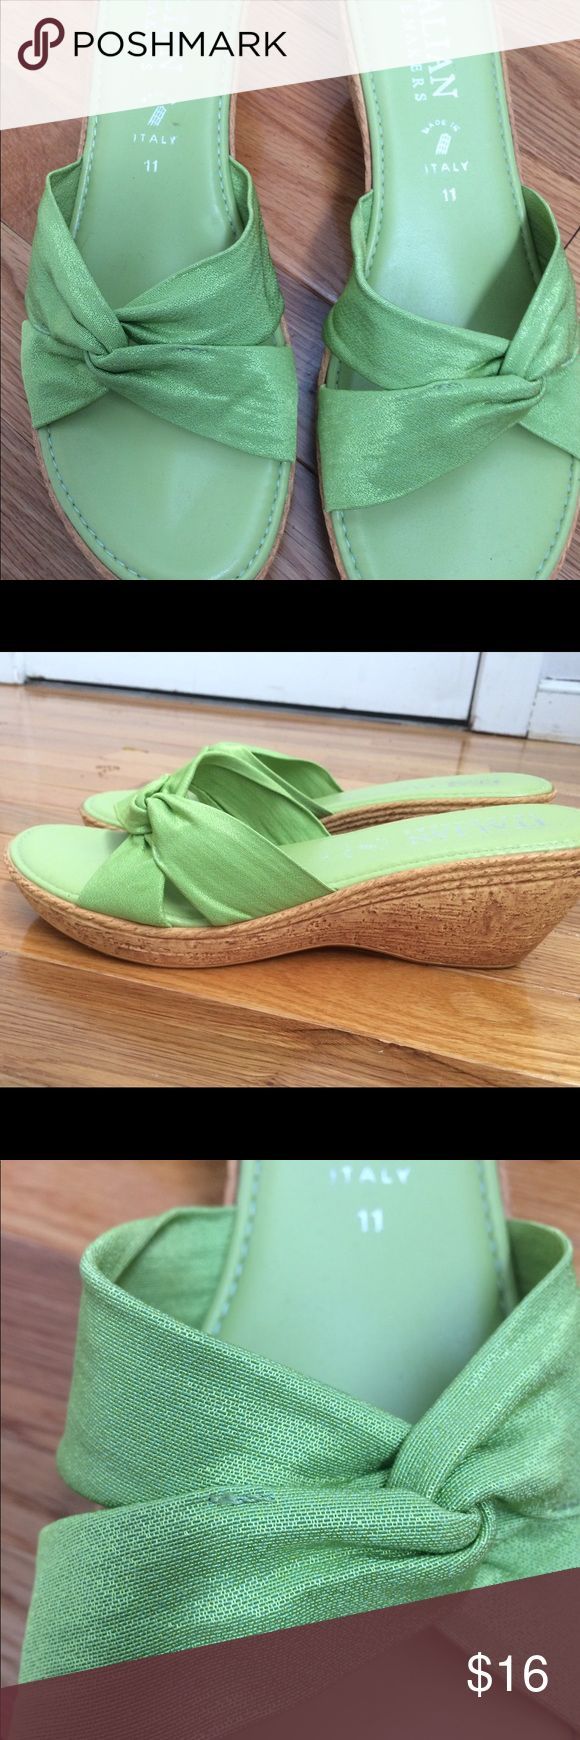 Gorgeous Italian green wedge slip on sandals Beautiful light green Italian slip on sandals in a size 11. The upper is made of cloth and is in pristine condition on this wedge sandal. Sandal is gently worn as seen by the bottoms. italian Shoemaker Shoes Wedges